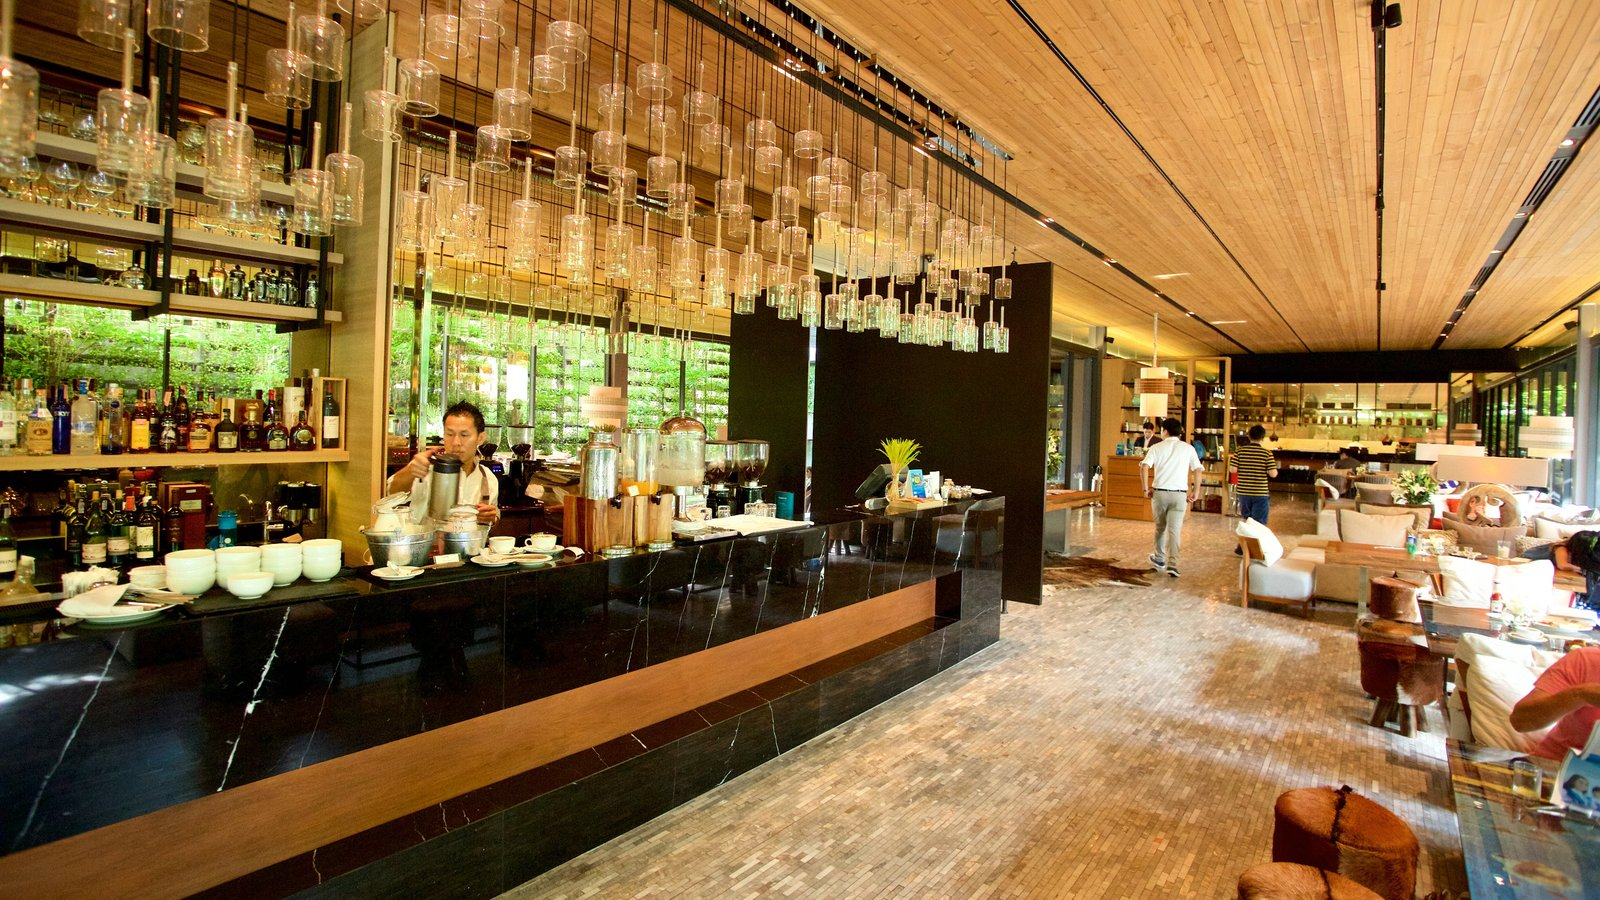 Sukhumvit which includes interior views and dining out